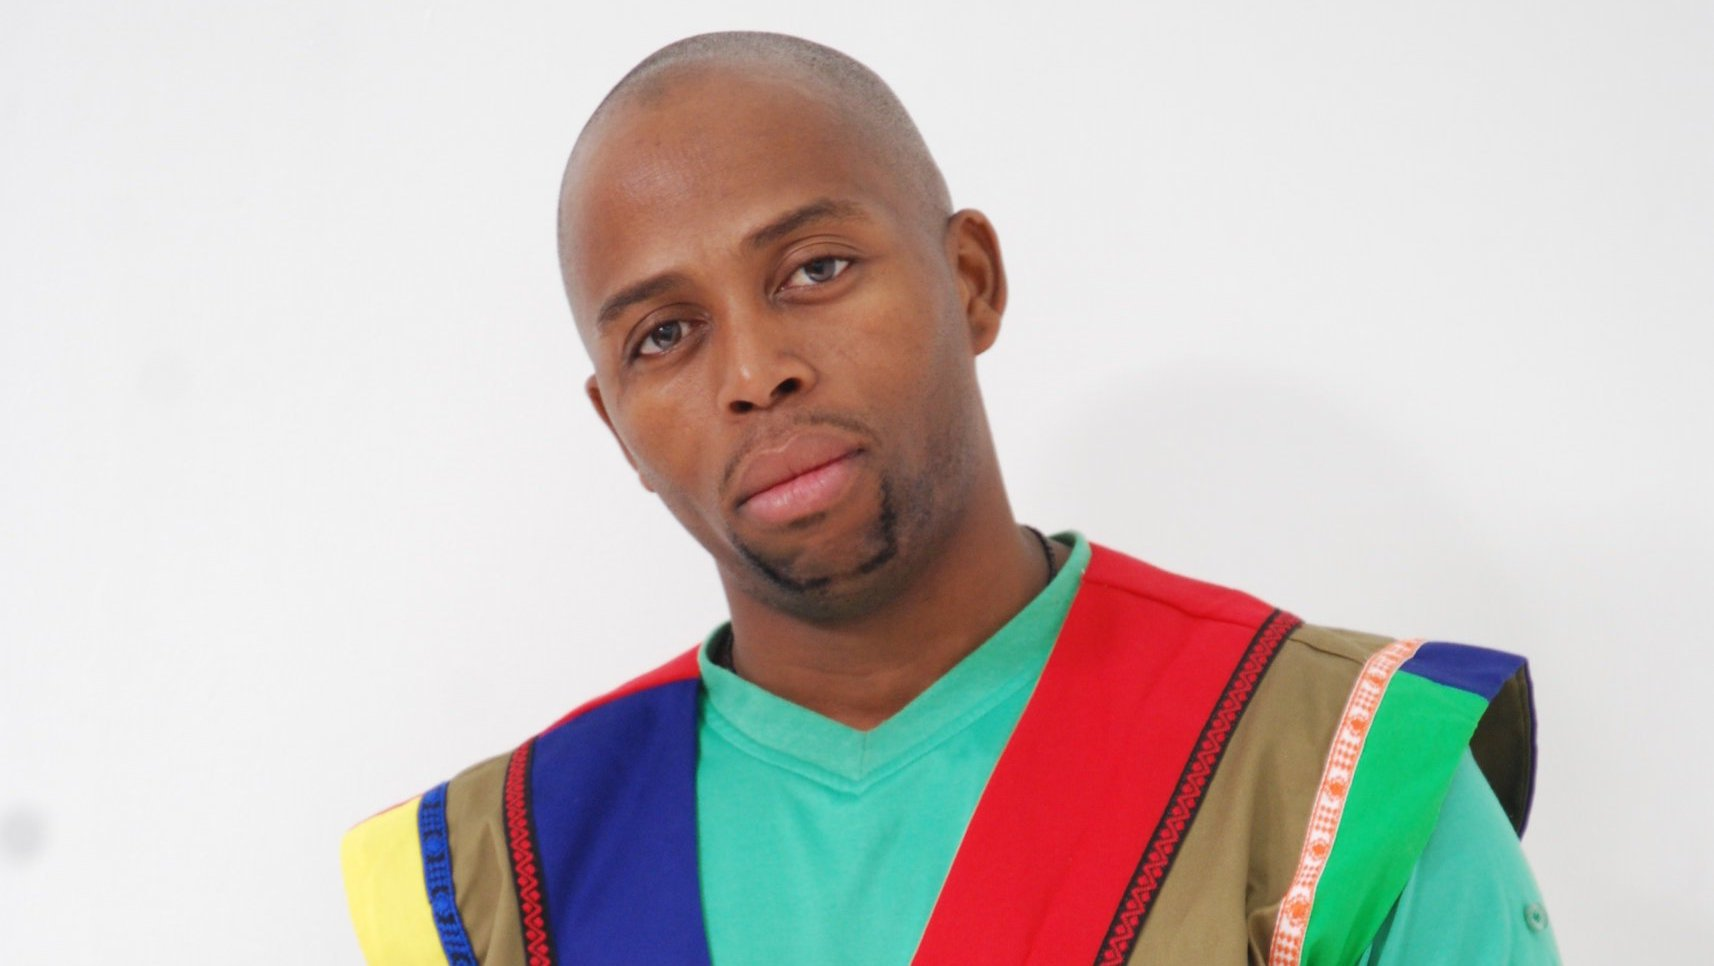 CD Baby expands into Africa with appointment of South African music industry veteran Sakhele Mzalazala – Music Business Worldwide